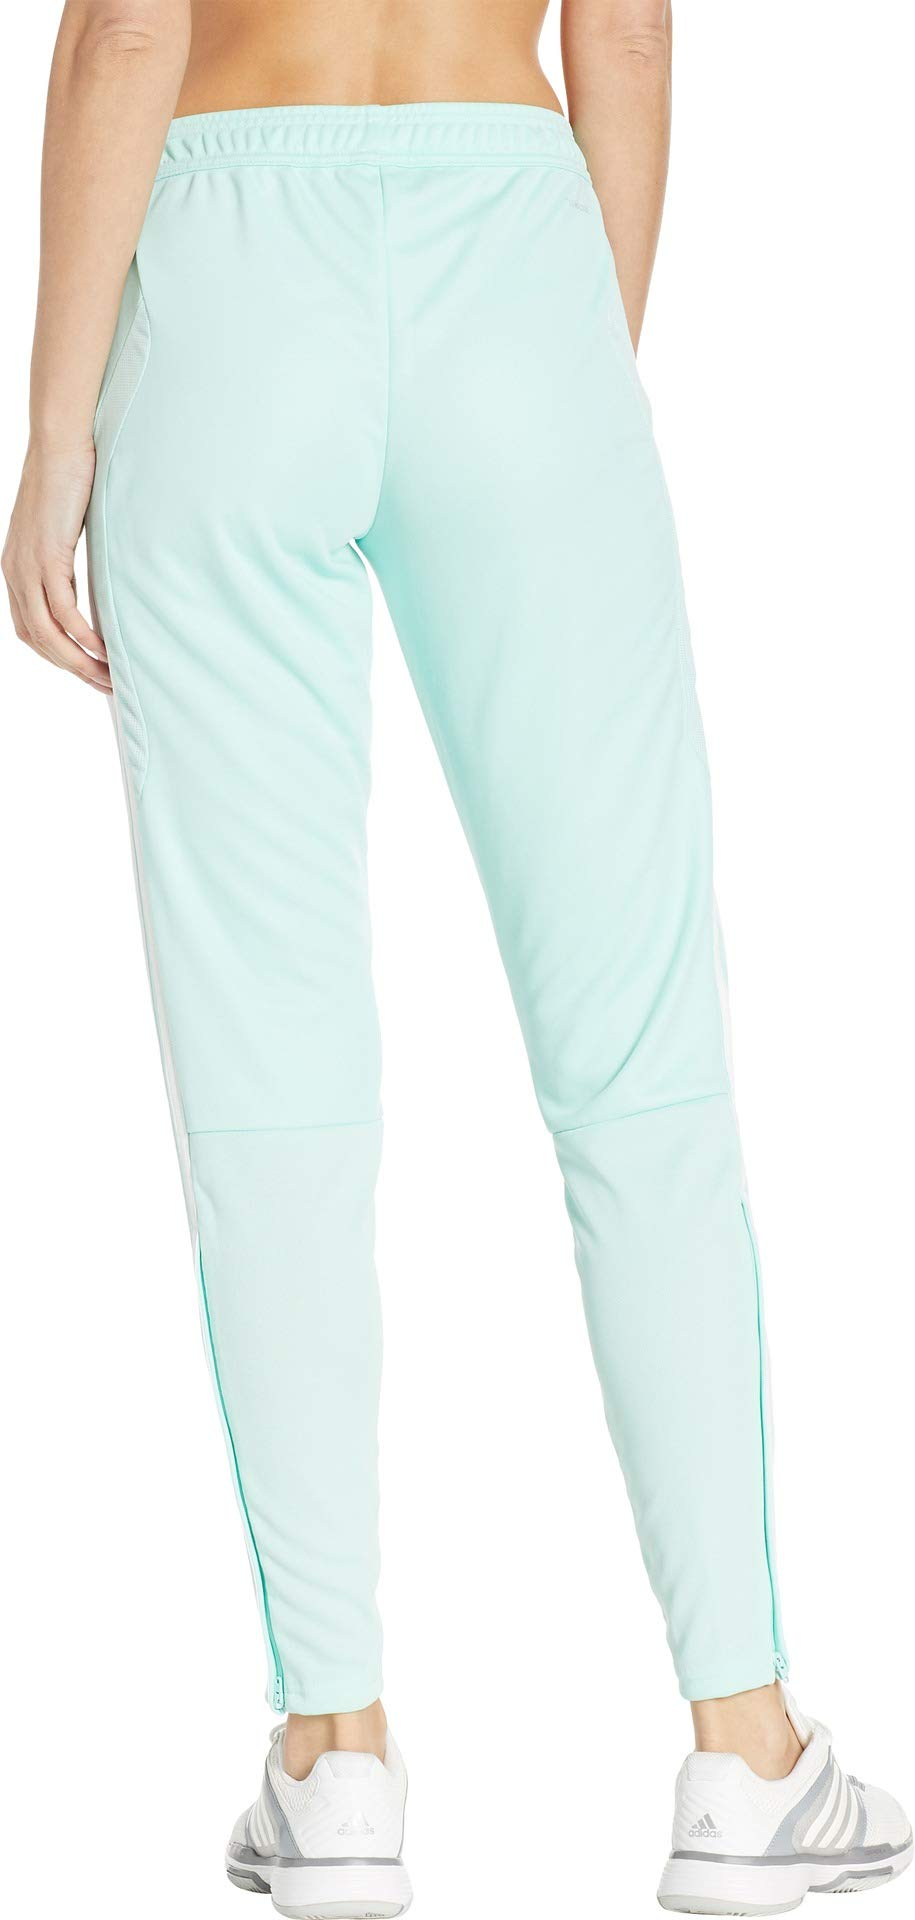 adidas Women's Tiro '19 Pants Clear Mint/White XX-Large 30 by adidas (Image #3)